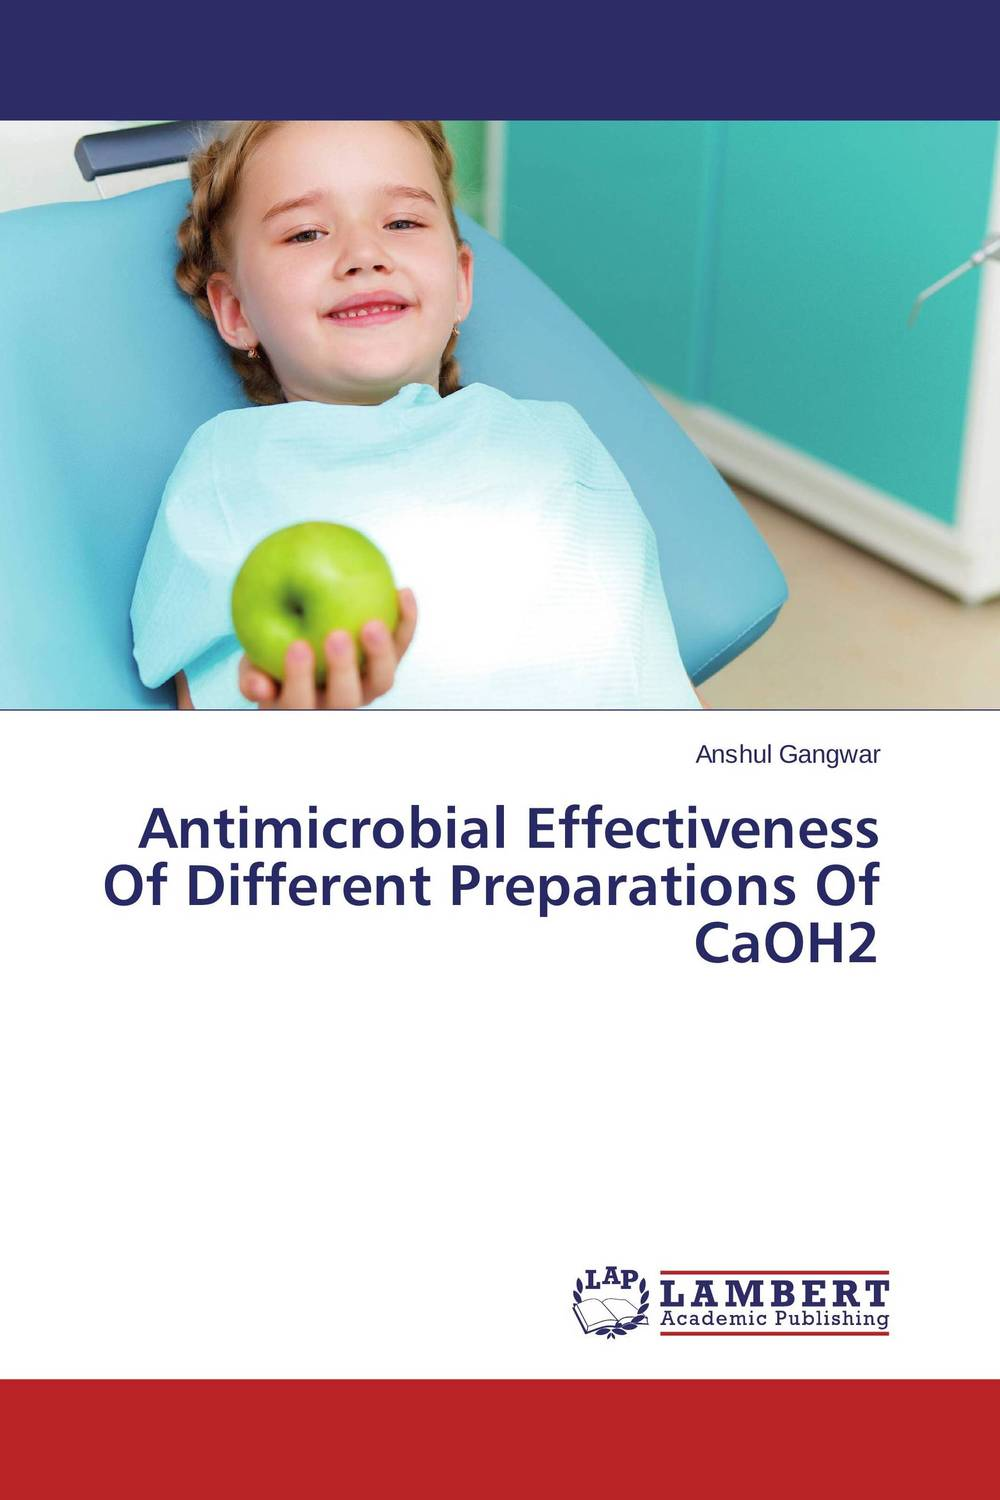 Antimicrobial Effectiveness Of Different Preparations Of CaOH2 the teeth with root canal students to practice root canal preparation and filling actually